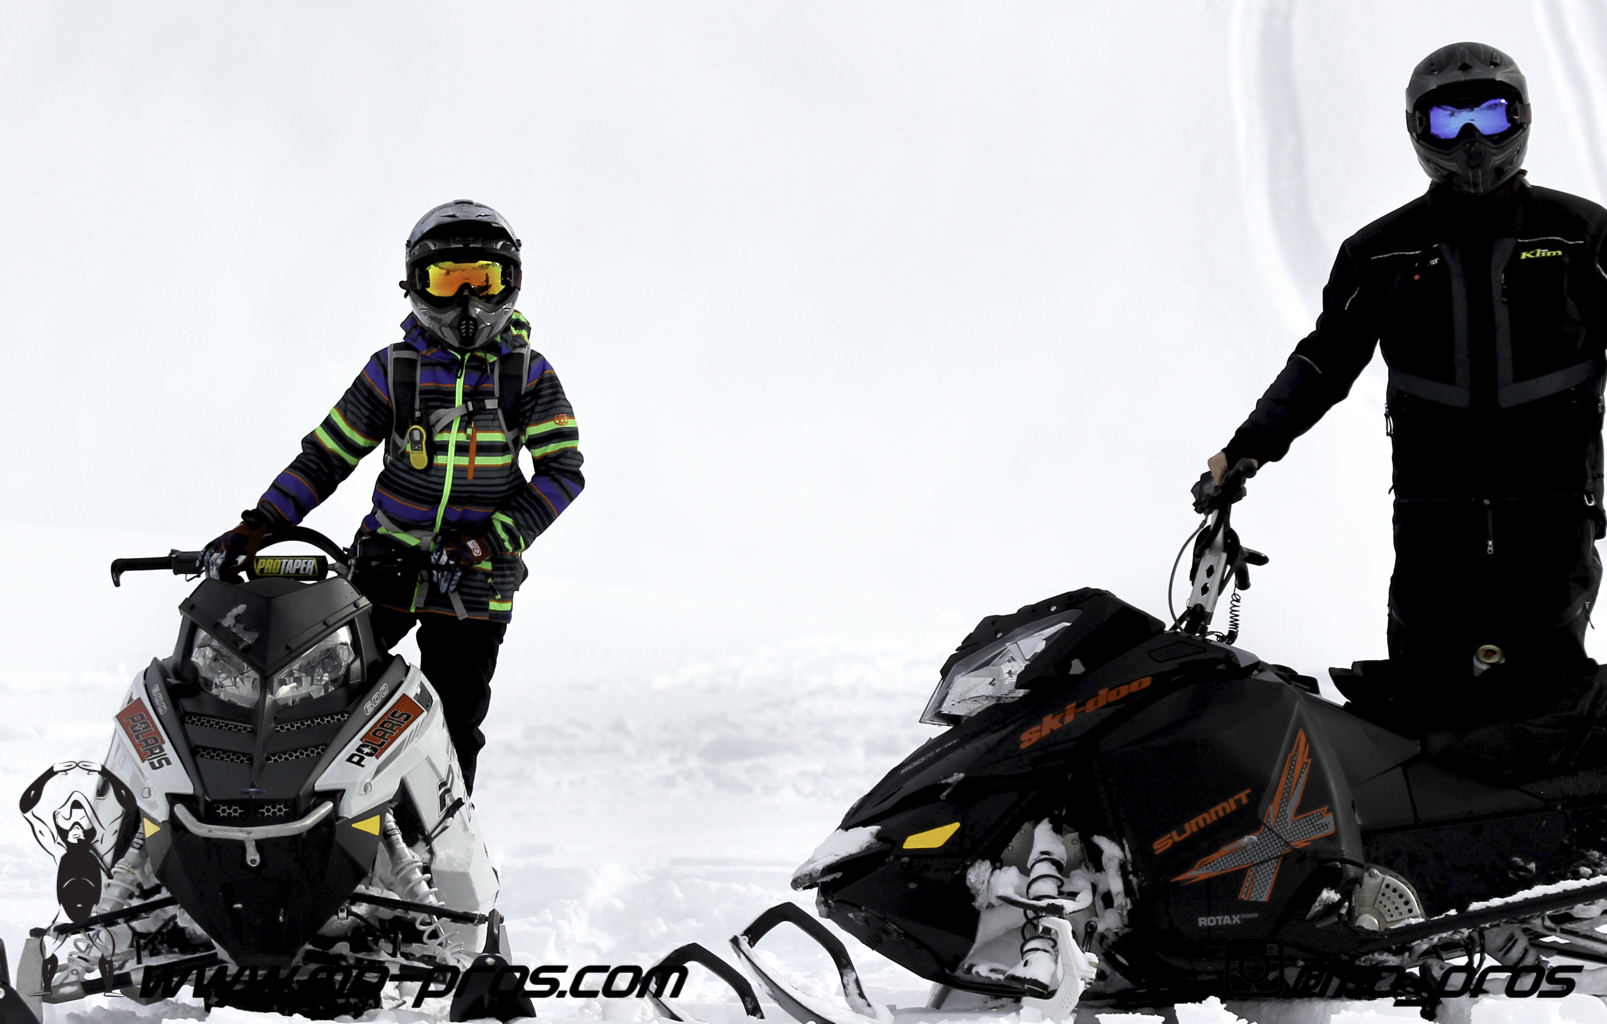 52_Tsaina Rack_Timbersled rack_Timbersled Rack_timbersled bag_snowmobile bag_Snowmobile_Snowboarding_Snowboard rack_snowboard_Snowbike_Ski_Rack_LinQ Snowboard Ski_Gun Rack_Gear_gas Rack_Cheetah Facto.jpg